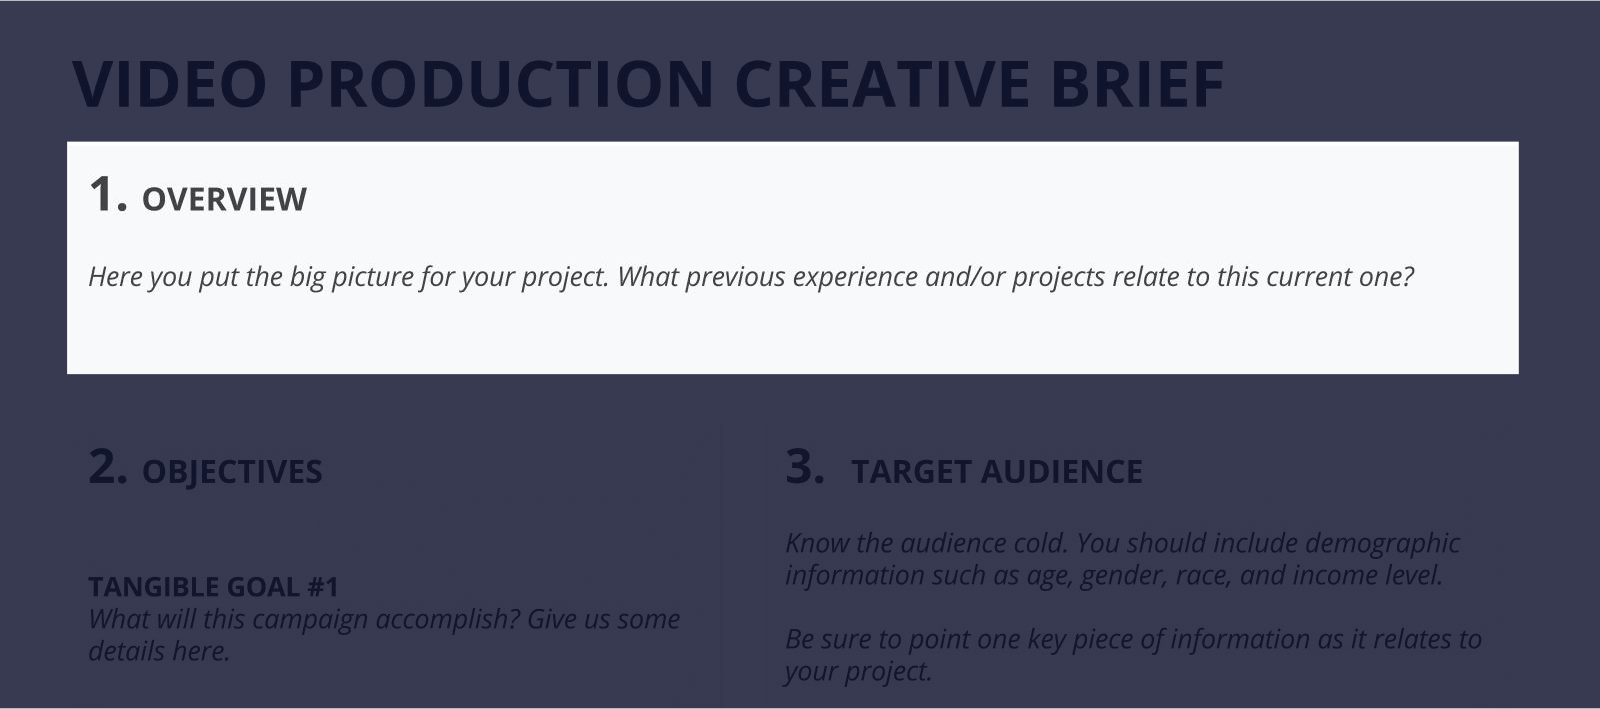 The Best Creative Brief Template For Video Agencies [Free Download] - Section 1 - Overview